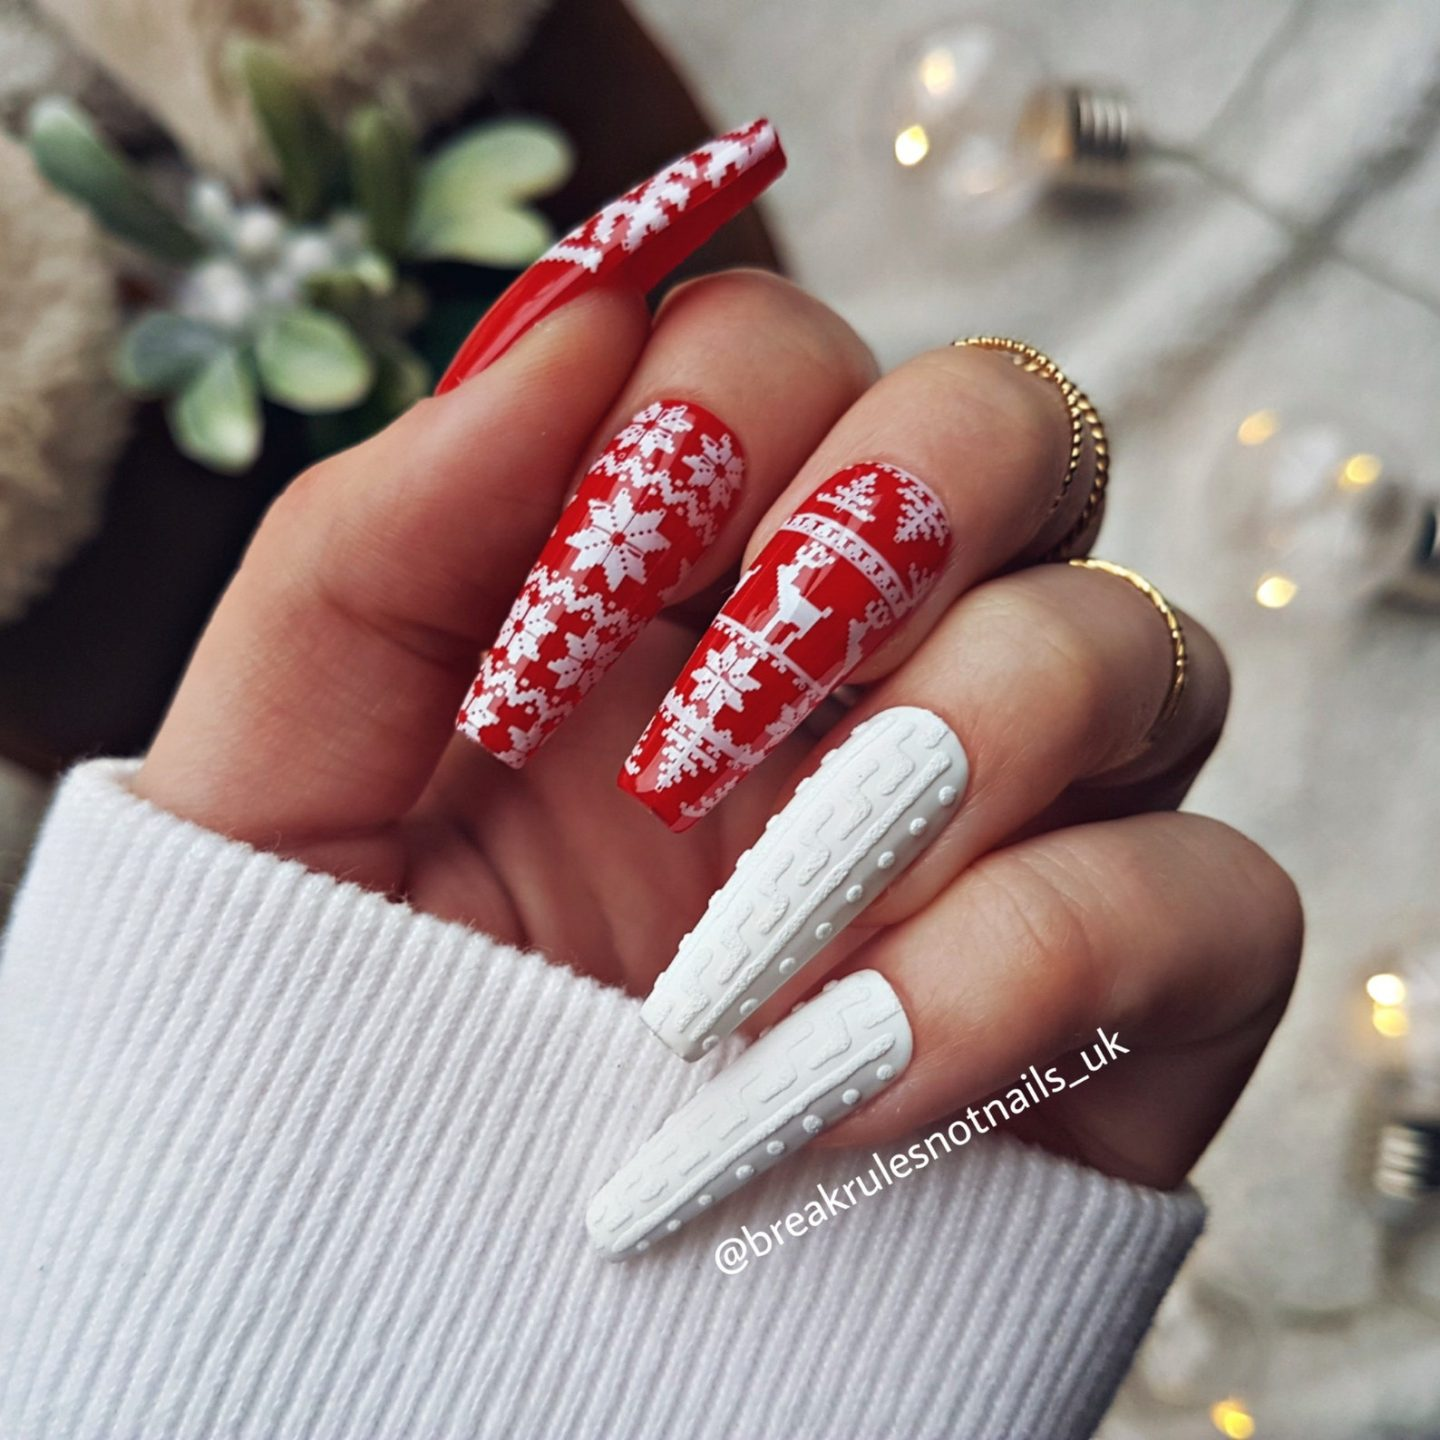 Cute red and white Christmas jumper sweater nails